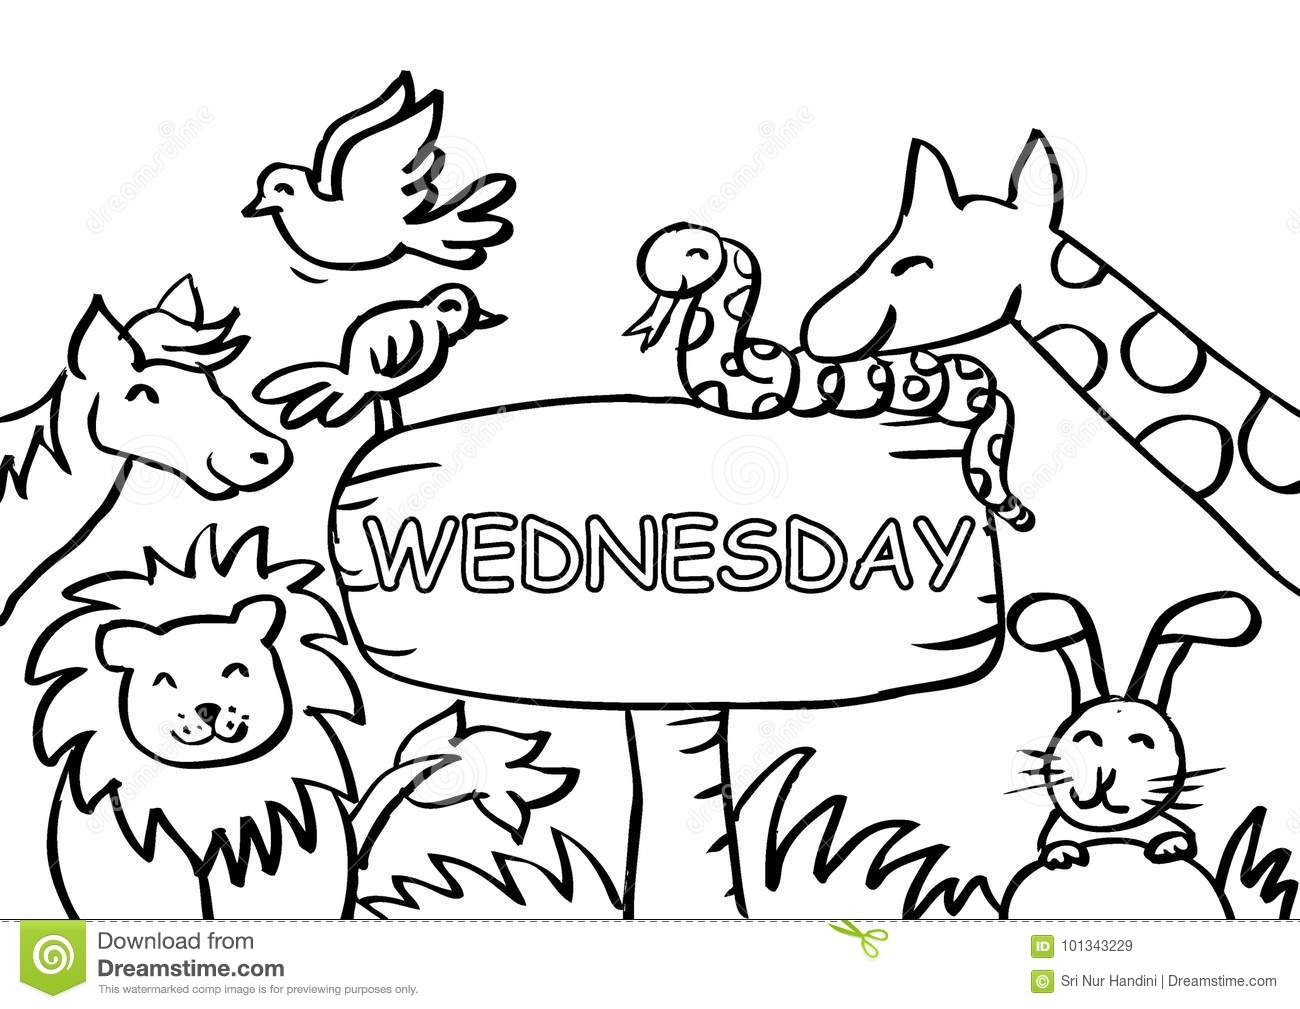 Wednesday Coloring Page With Animals Stock Illustration ...